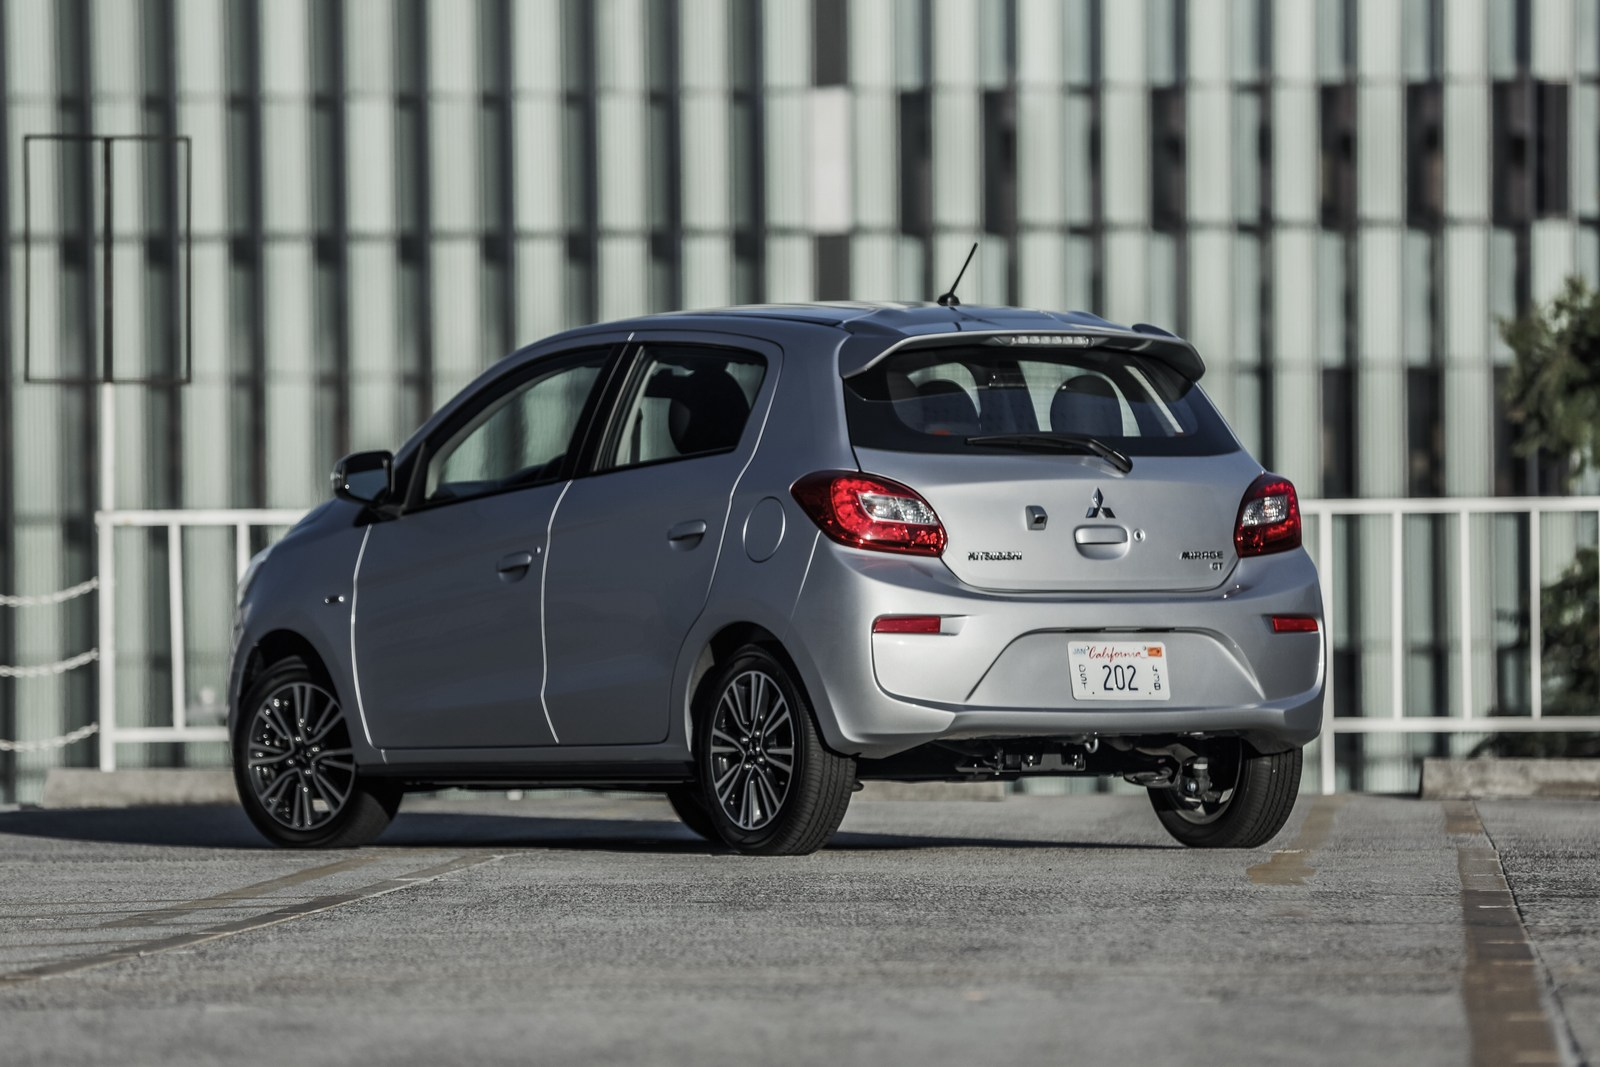 2018 Mitsubishi Mirage And Mirage G4 Gain A 7-Inch ...